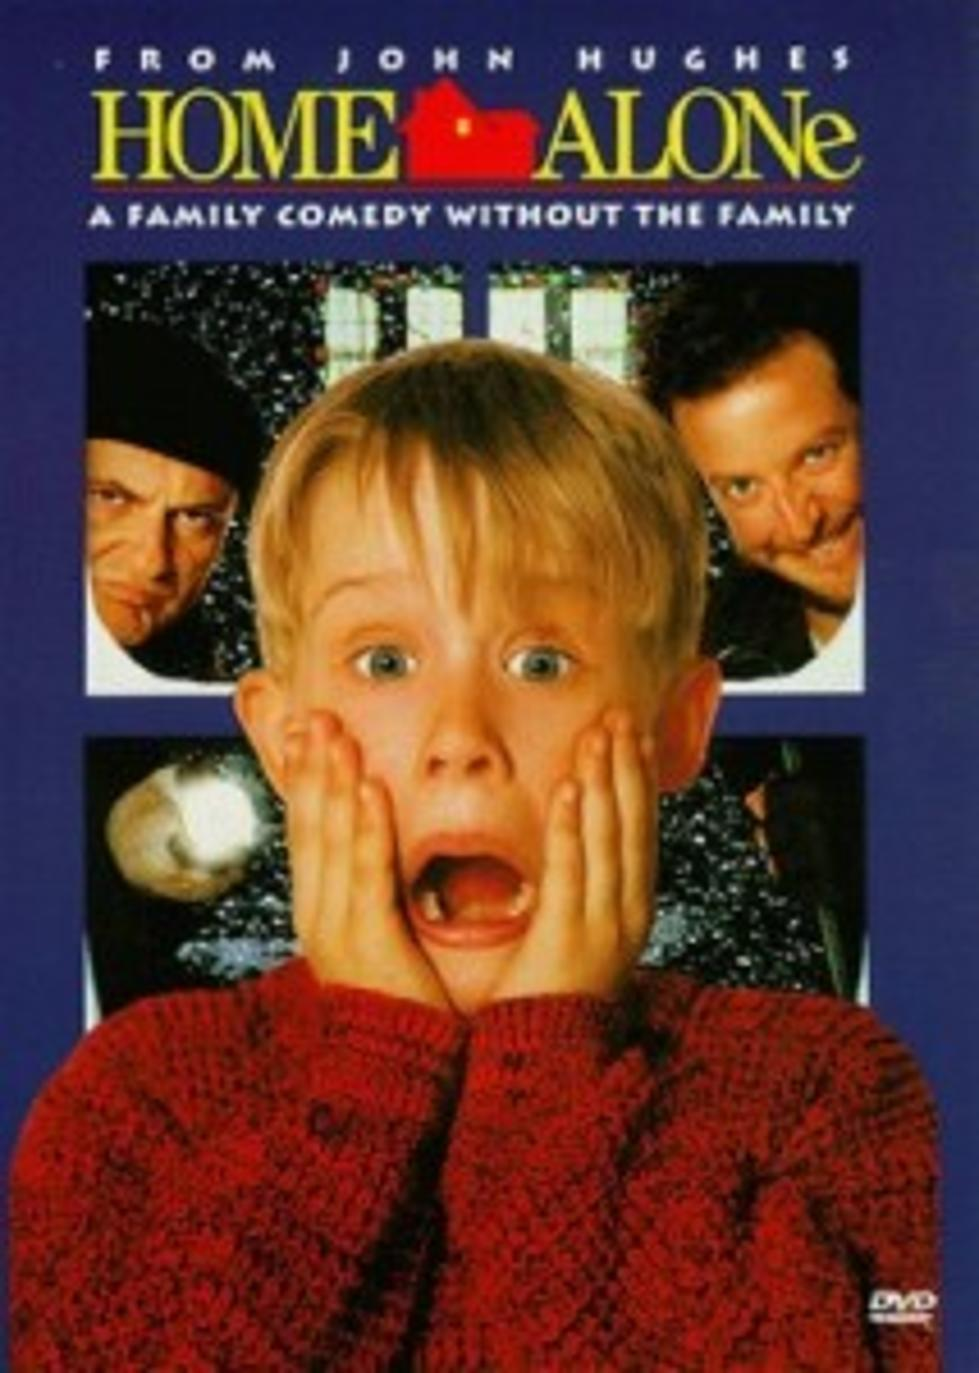 is home alone a christmas movie or a movie set at christmas - Home Alone Christmas Movie